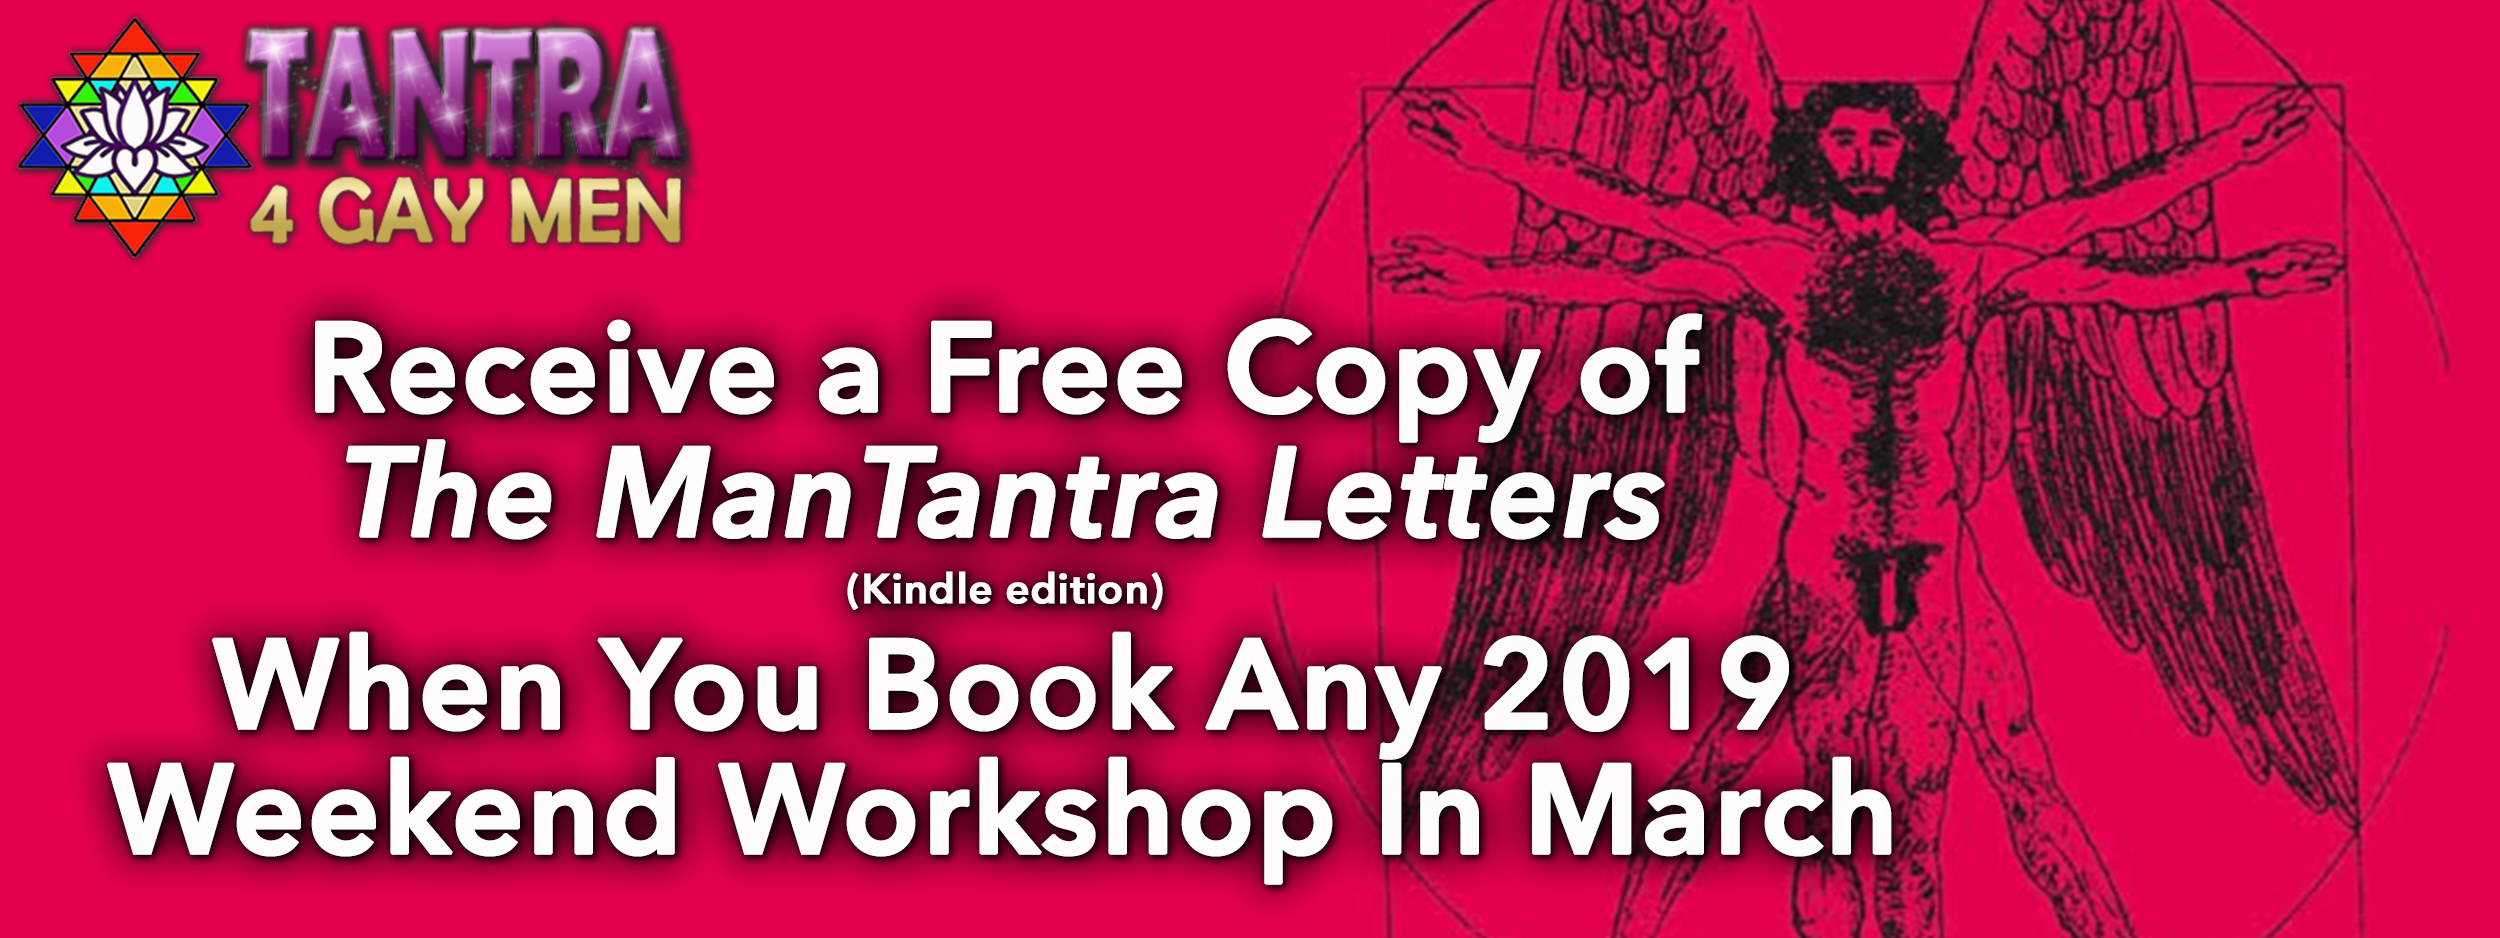 man_tantra_letters_in-page_banner_t4_b_1.png